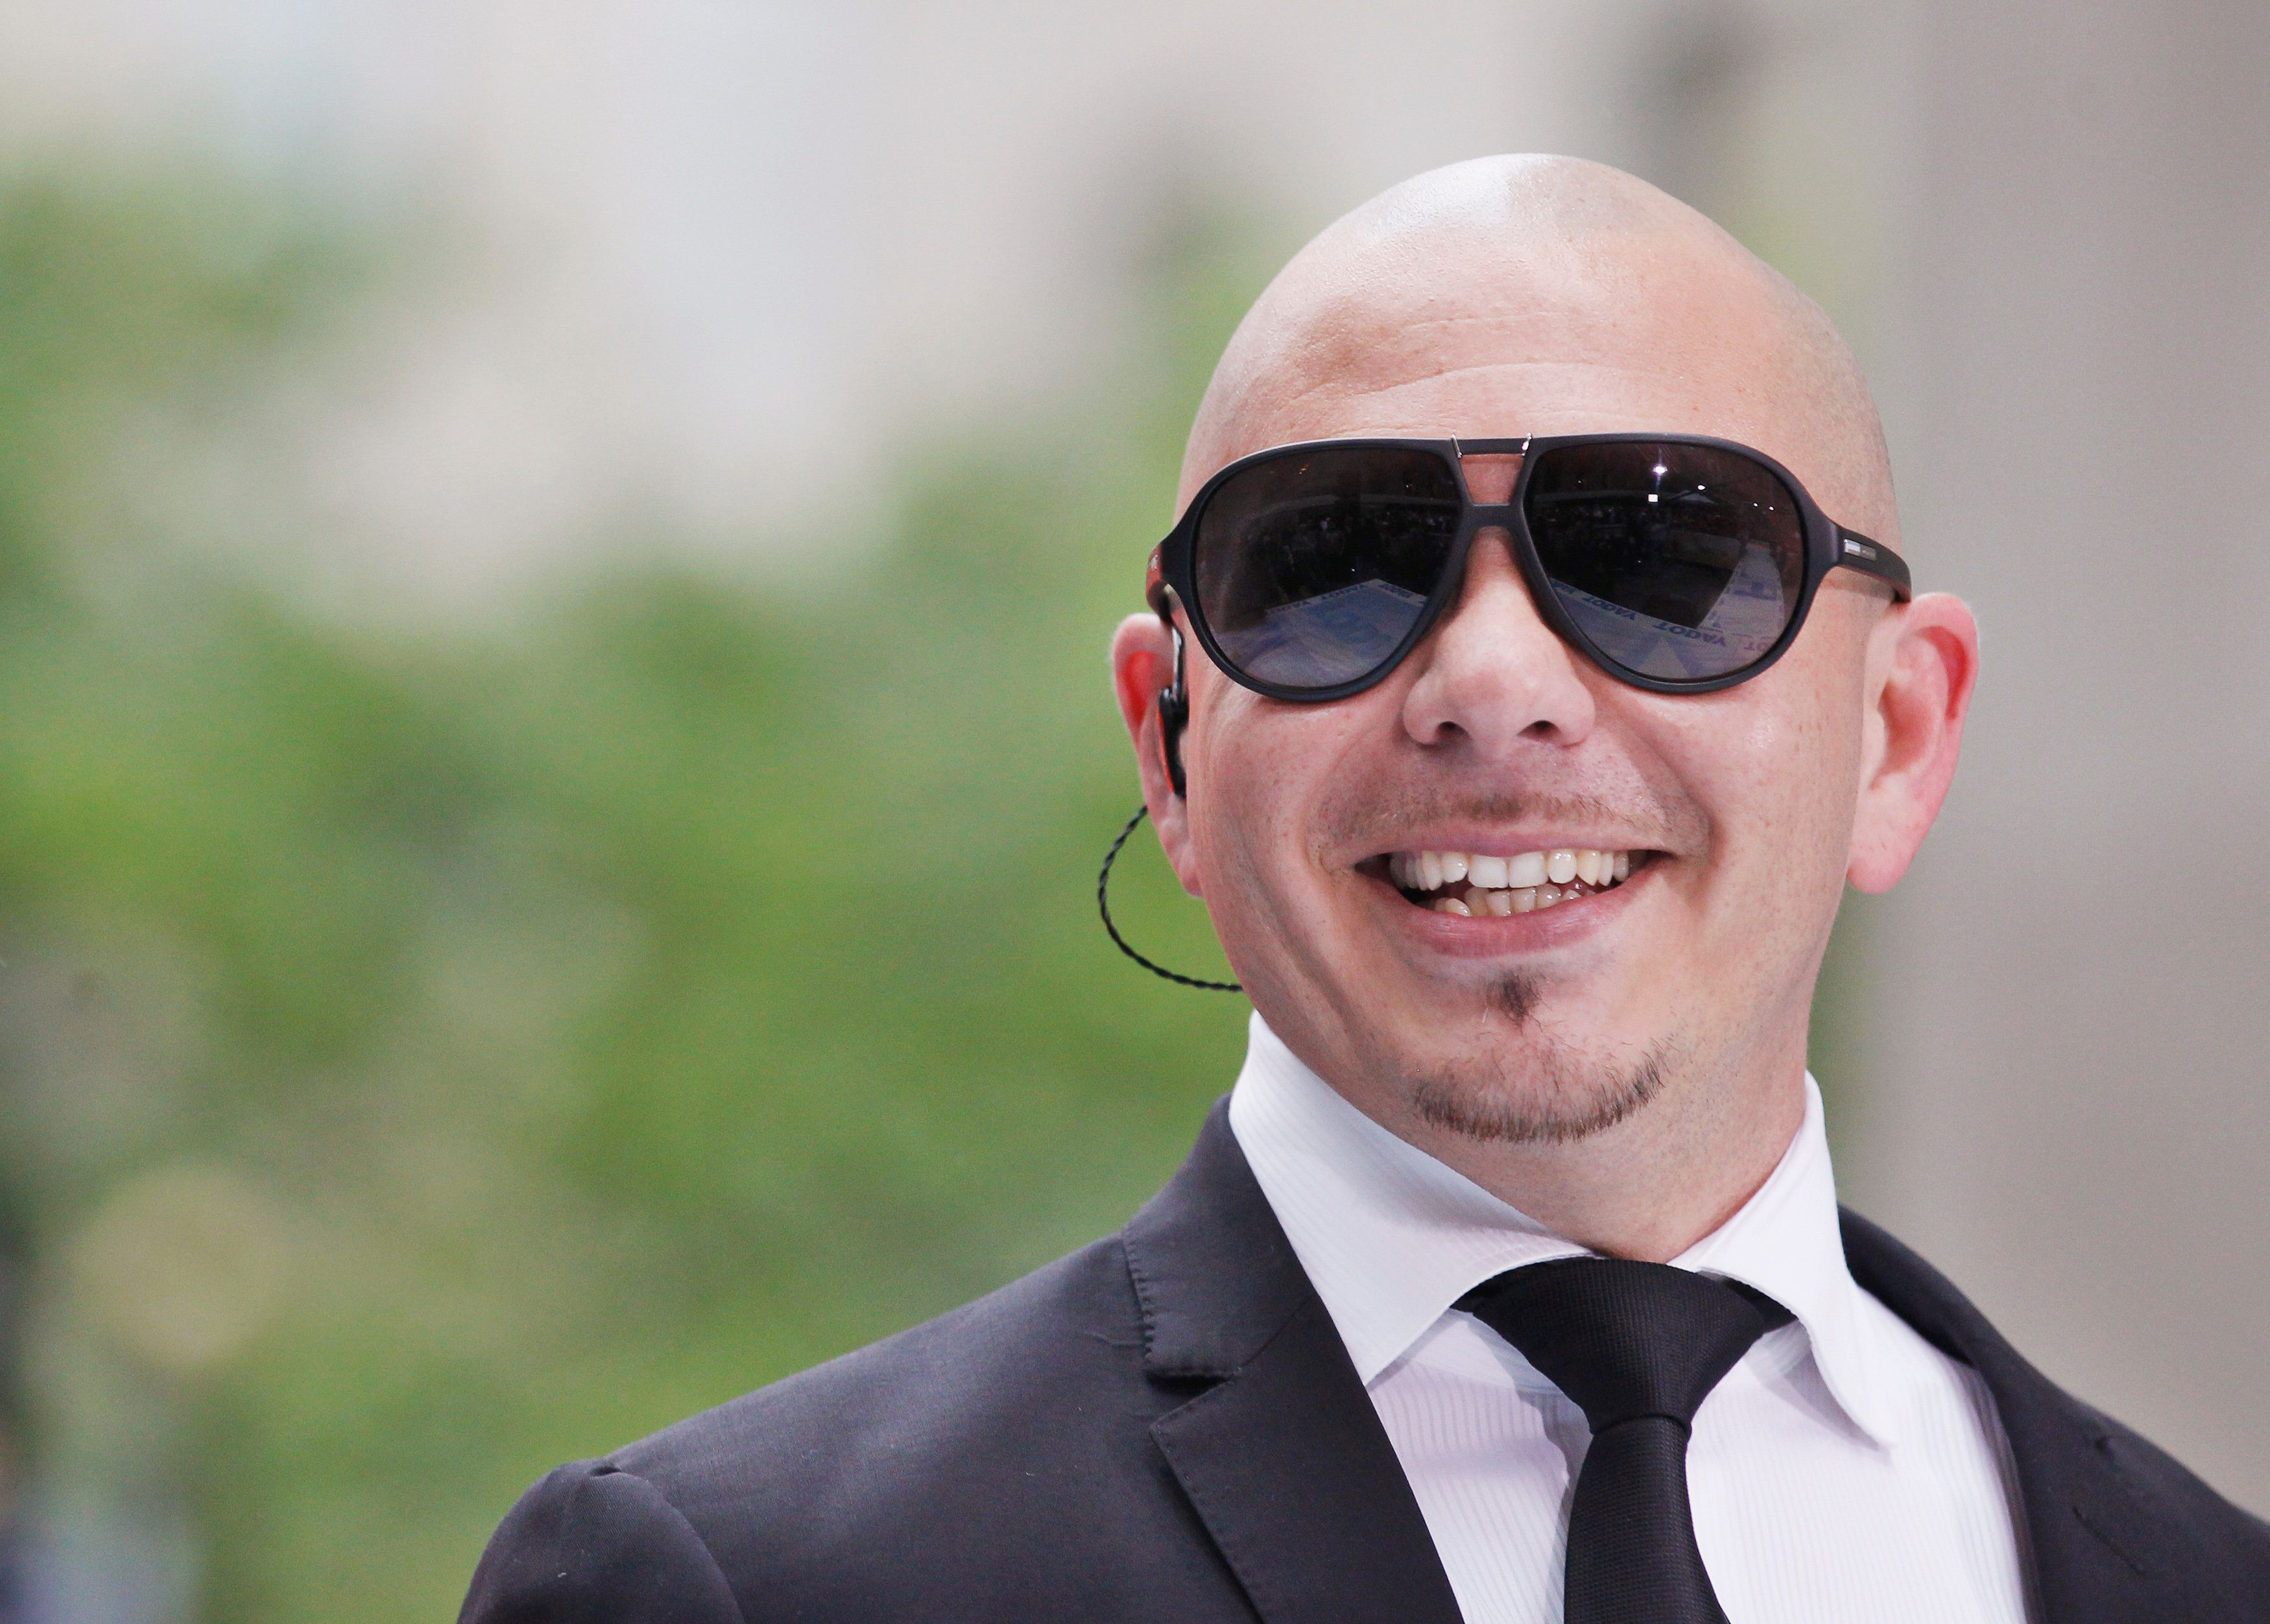 Singer Pitbull performs on NBC's 'Today' show in New York, May 25, 2012. REUTERS/Brendan McDermid (UNITED STATES - Tags: ENTERTAINMENT HEADSHOT)